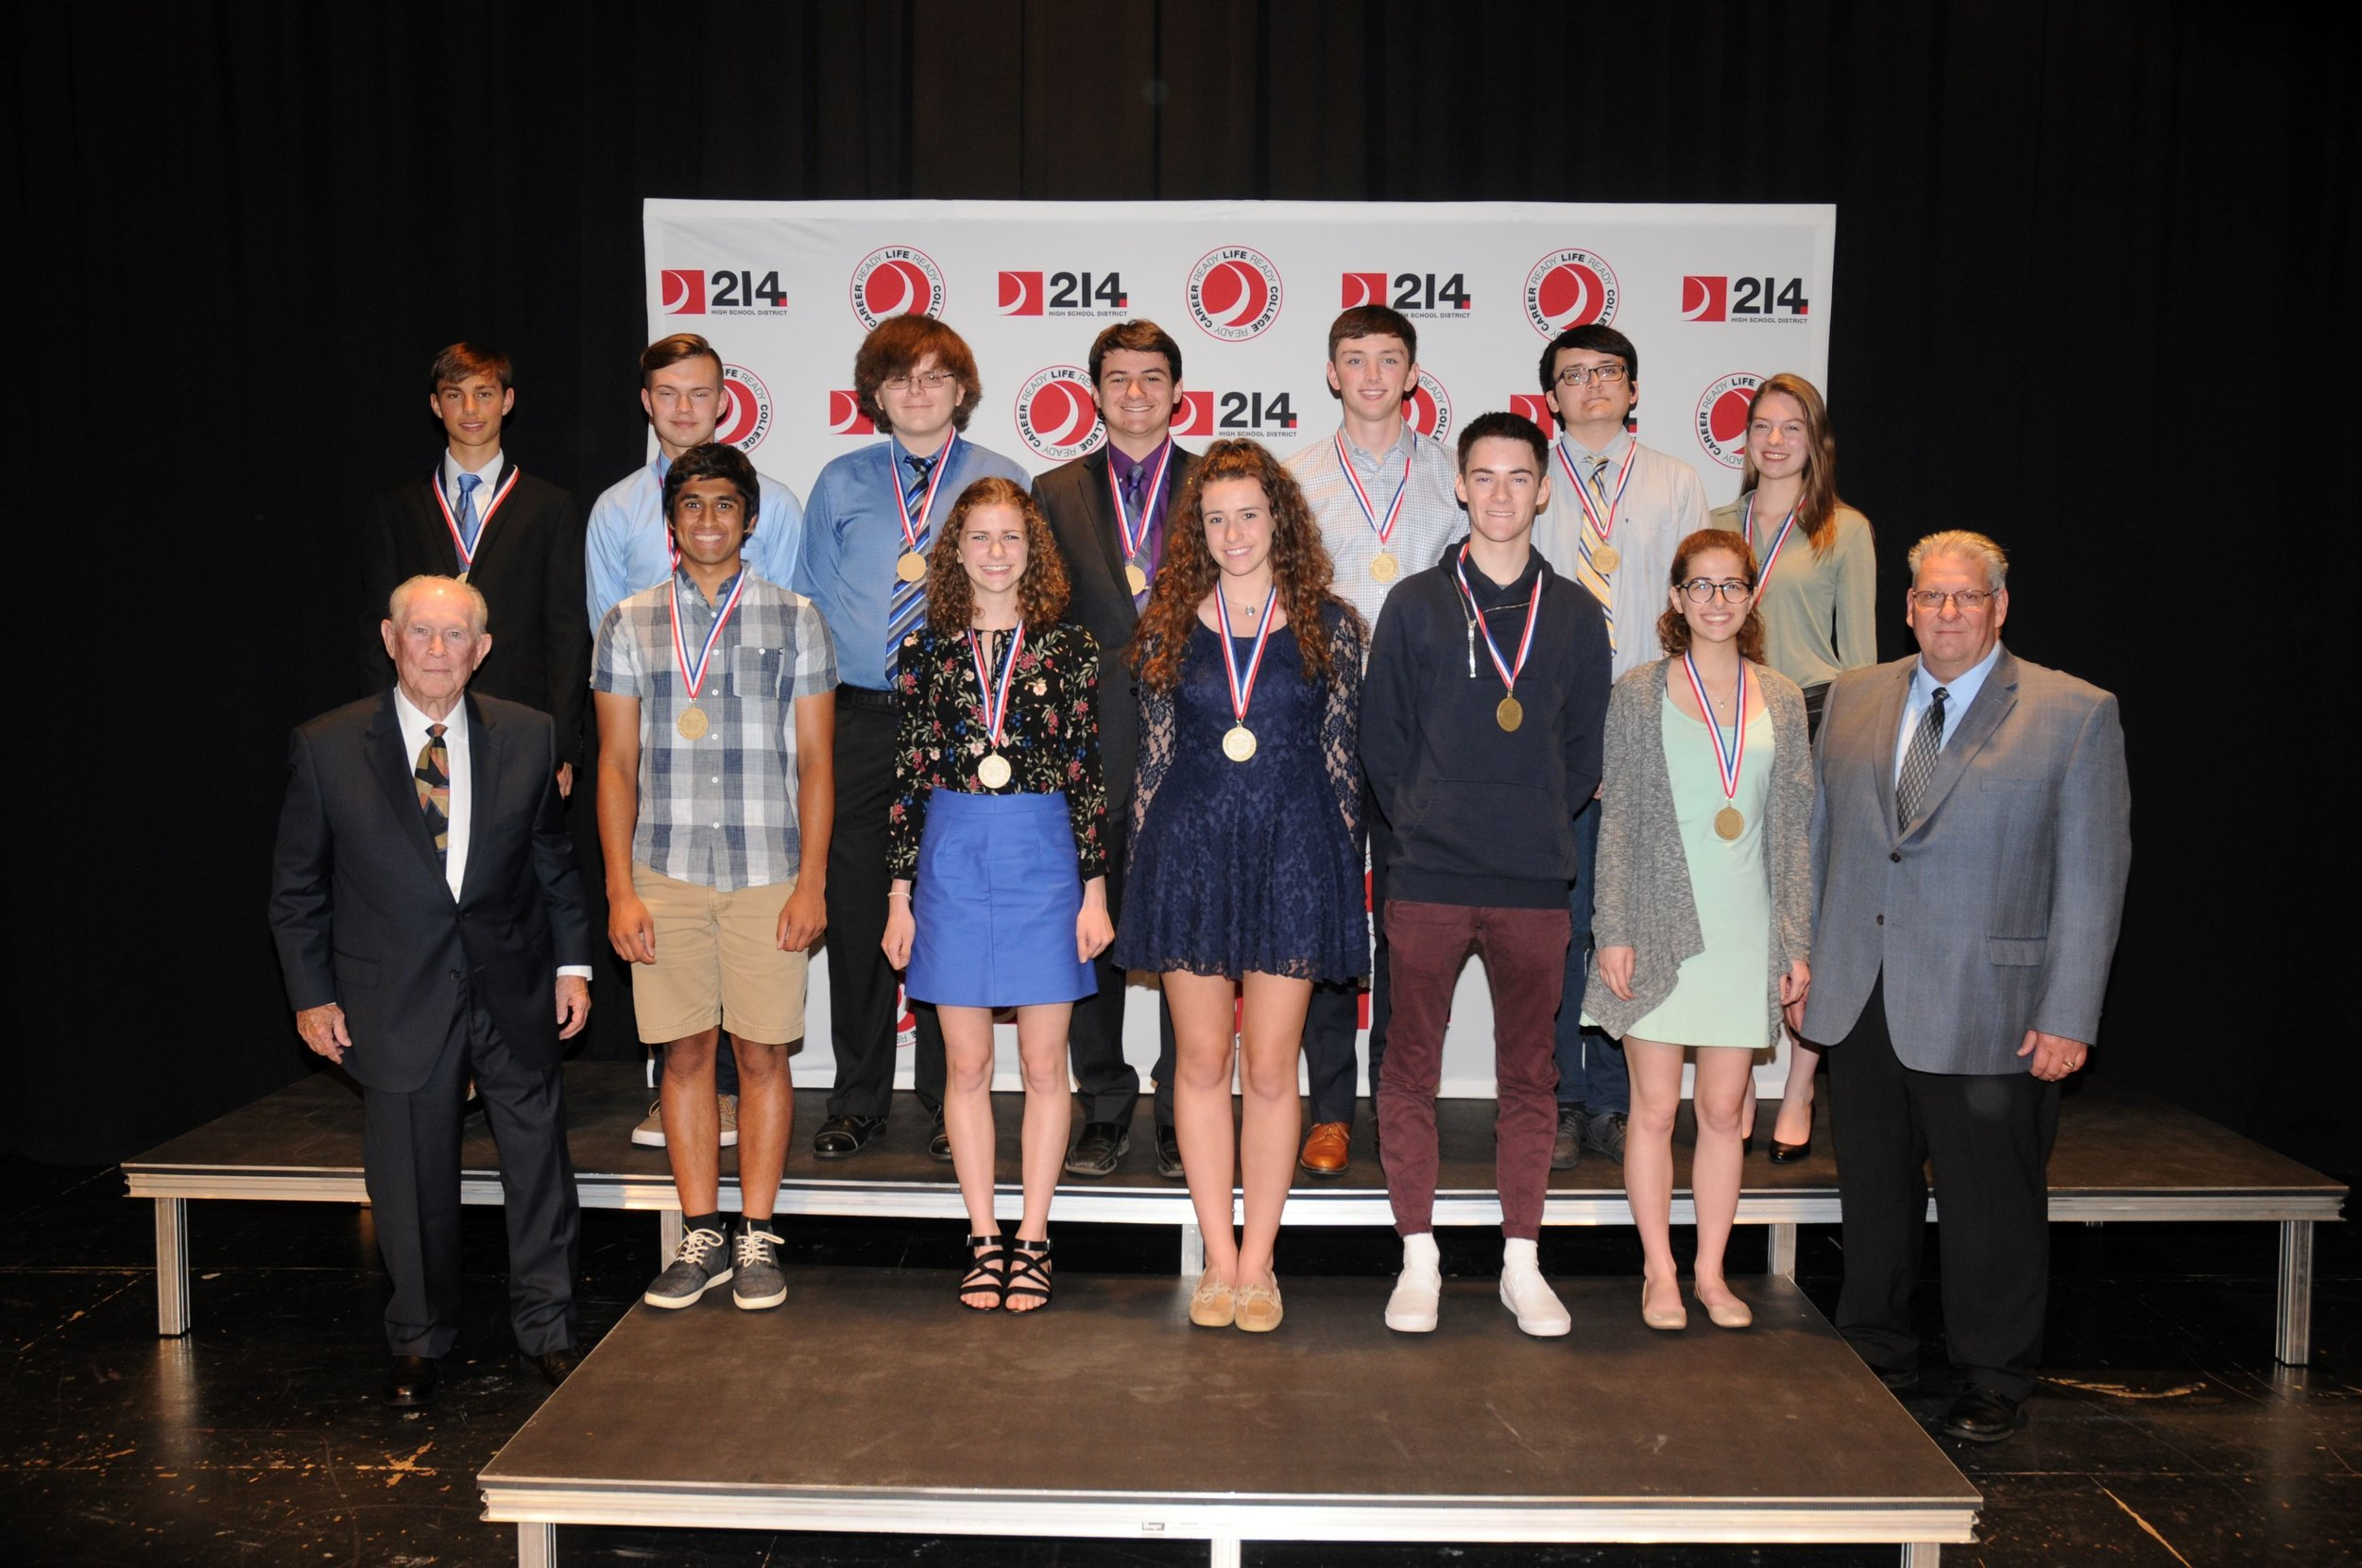 Every year, District 214 students who are National Merit Finalists receive an award named after Dr. Stephen Berry that recognizes their dedication to study, sacrifice of free time and acknowledges their future academic and leadership potential.